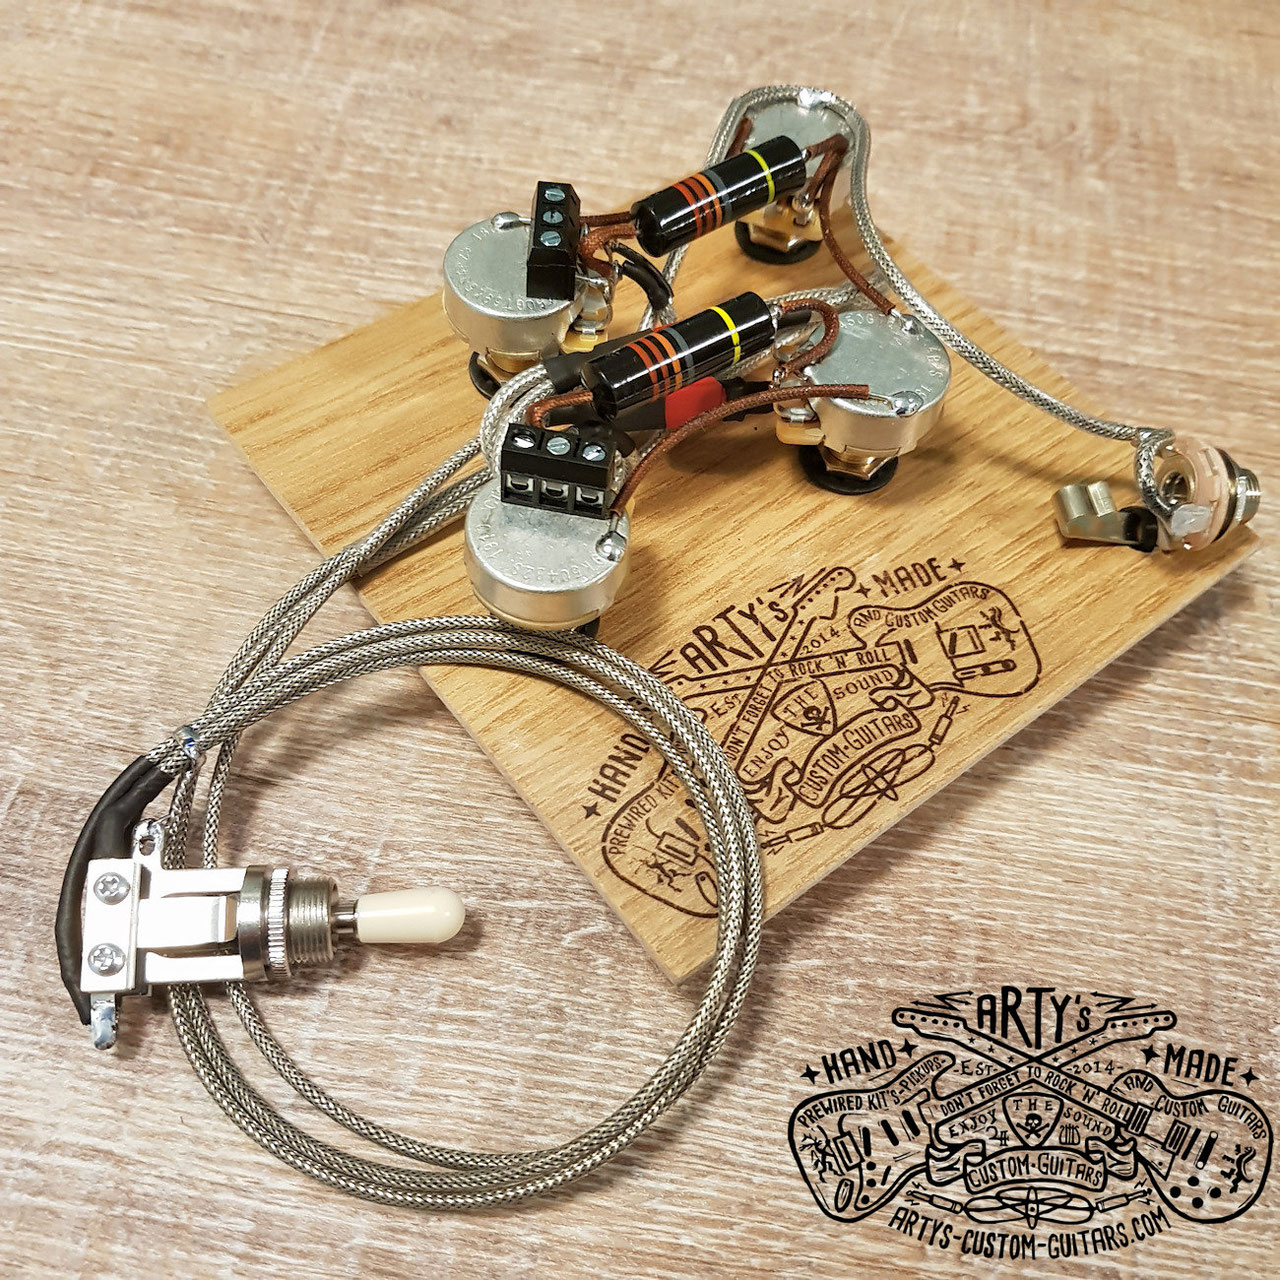 les paul solderless wiring harness only without switch.